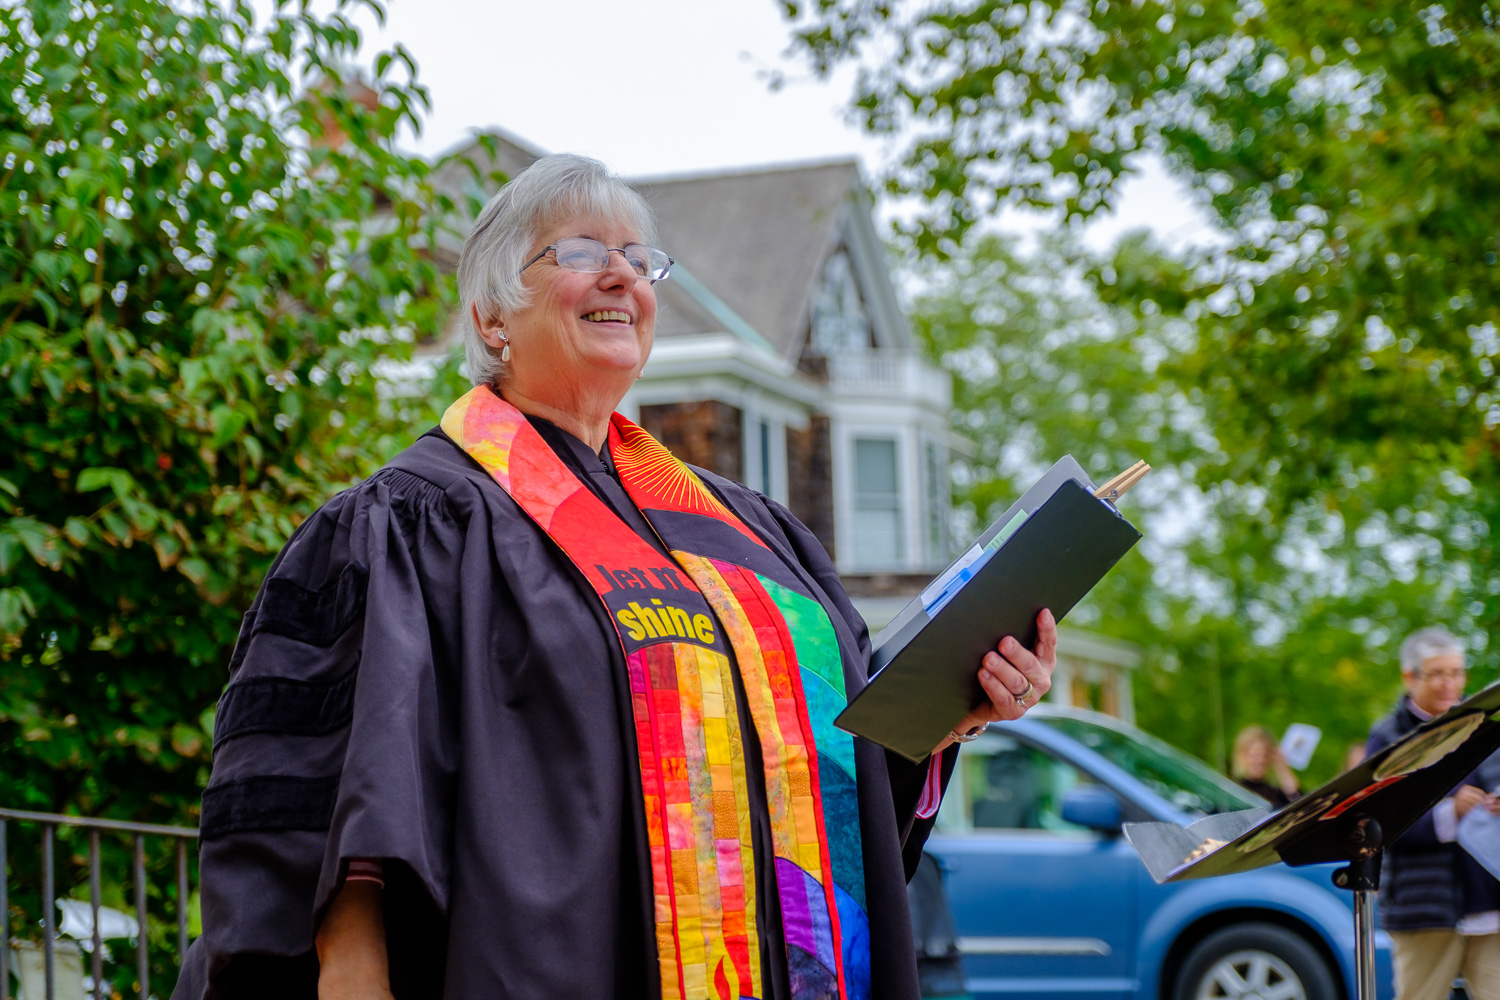 Rev. Dr. Ann Van Cleef of Orient Congregational Church. (Credit: Jeremy Garretson)